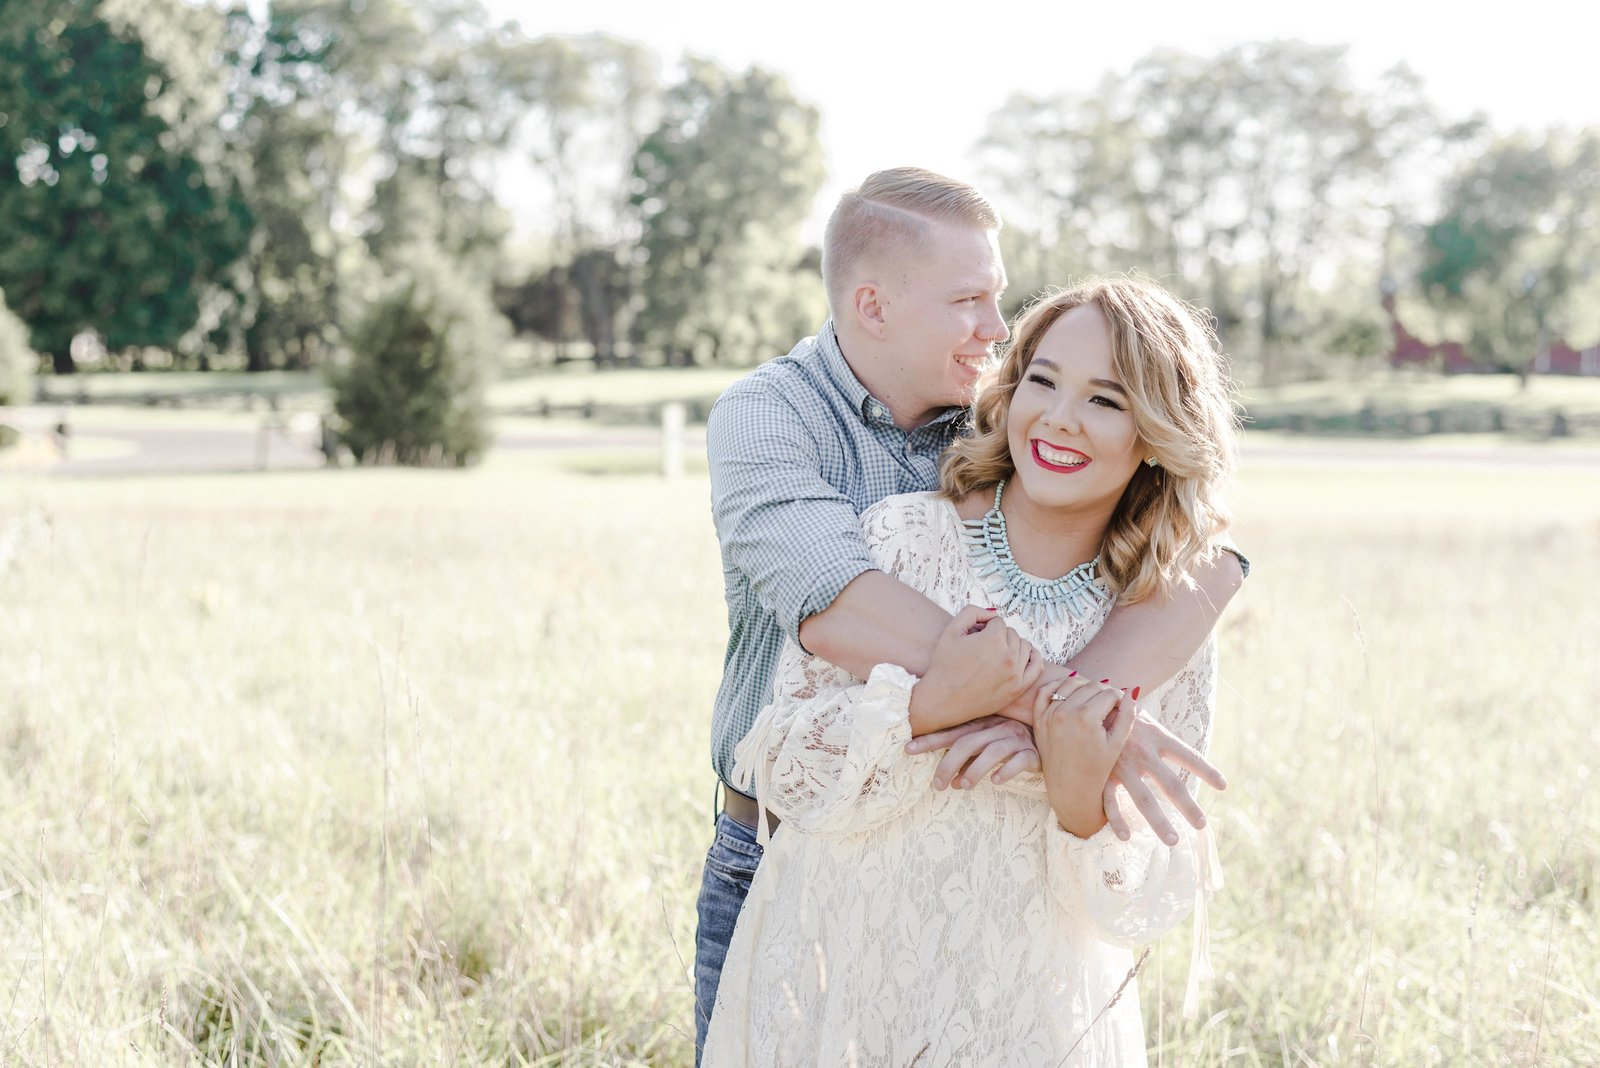 Cassidy_Alane_Photography-Kristin&Kyle-Carriage_Hill_Dayton_Metro_Park_-_Engagement_&_Wedding_Photographer-02